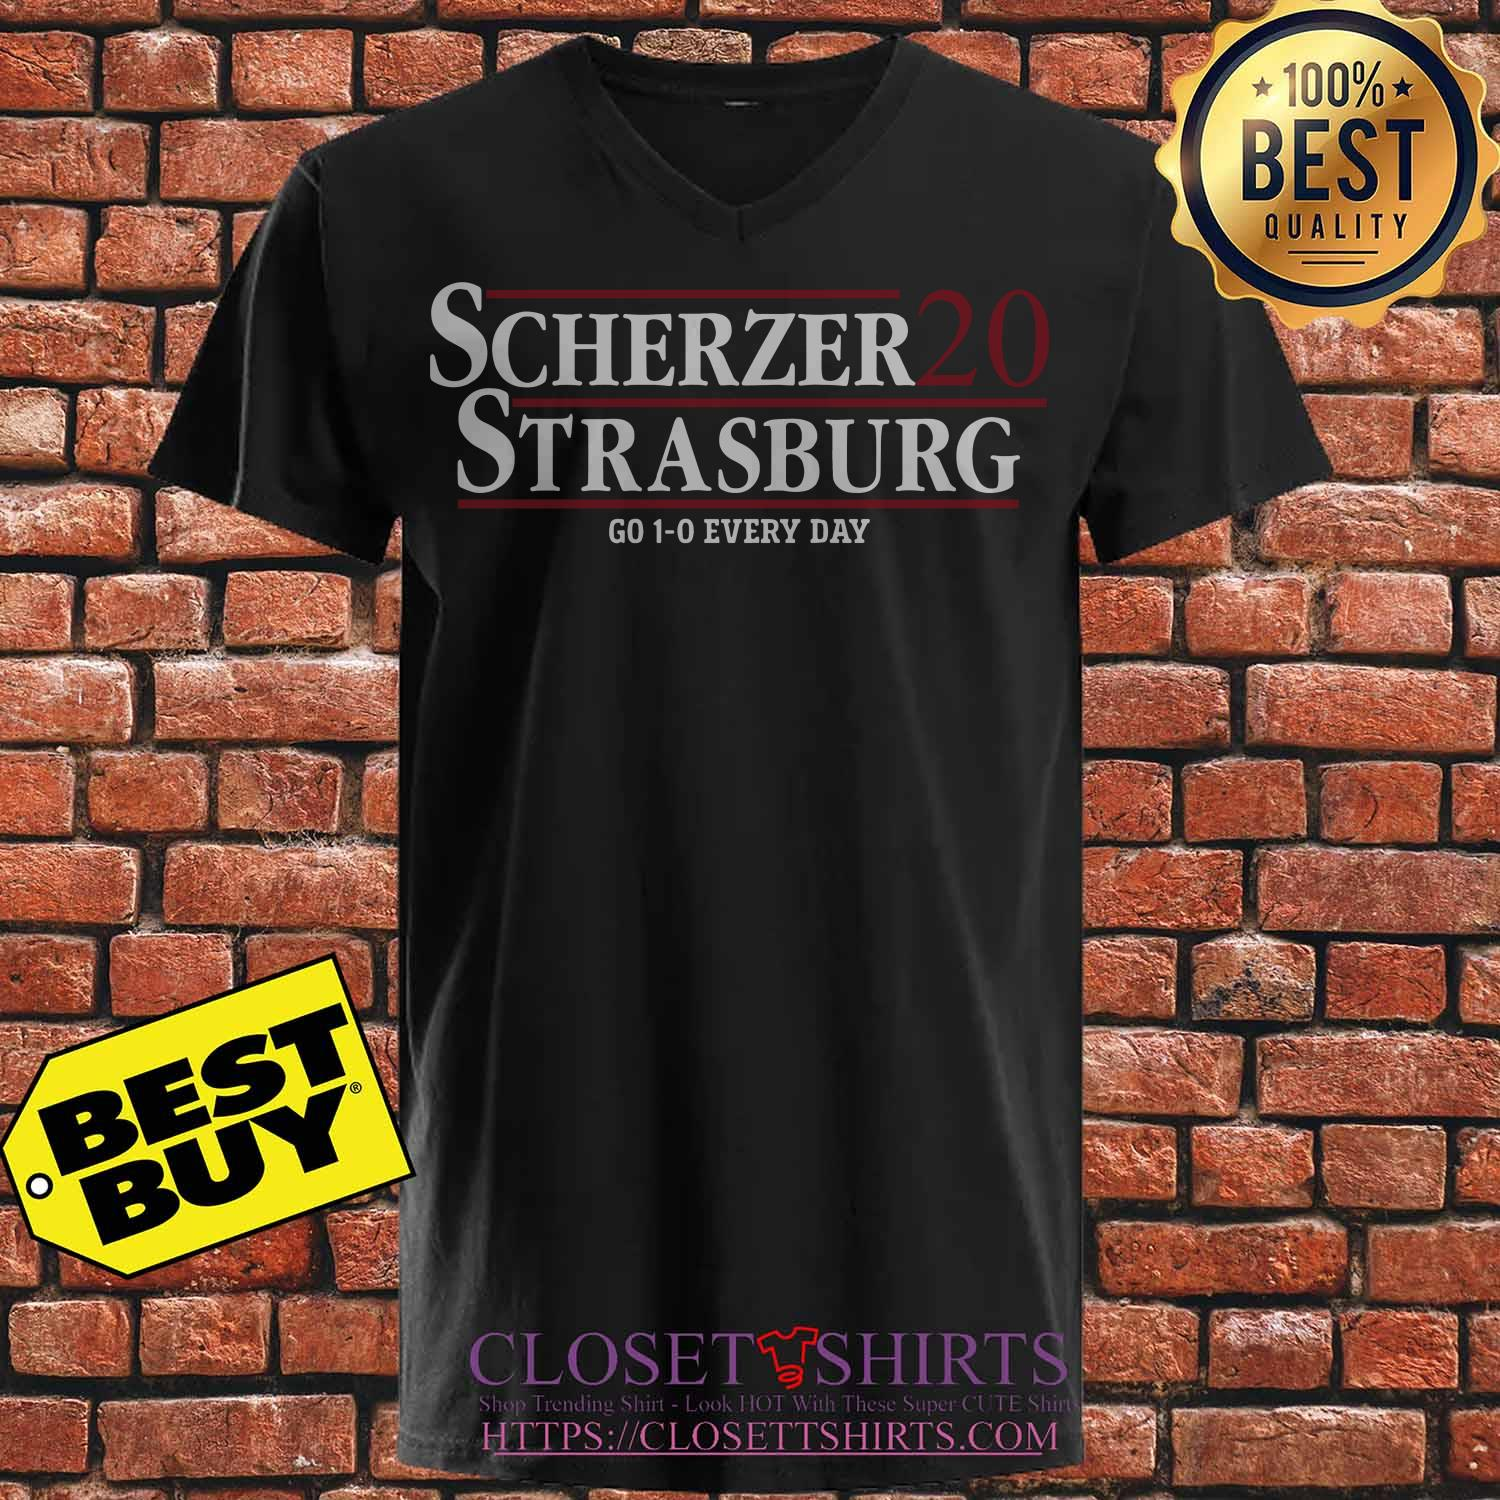 Scherzer Strasburg 2020 Go 1 0 Every Day v neck